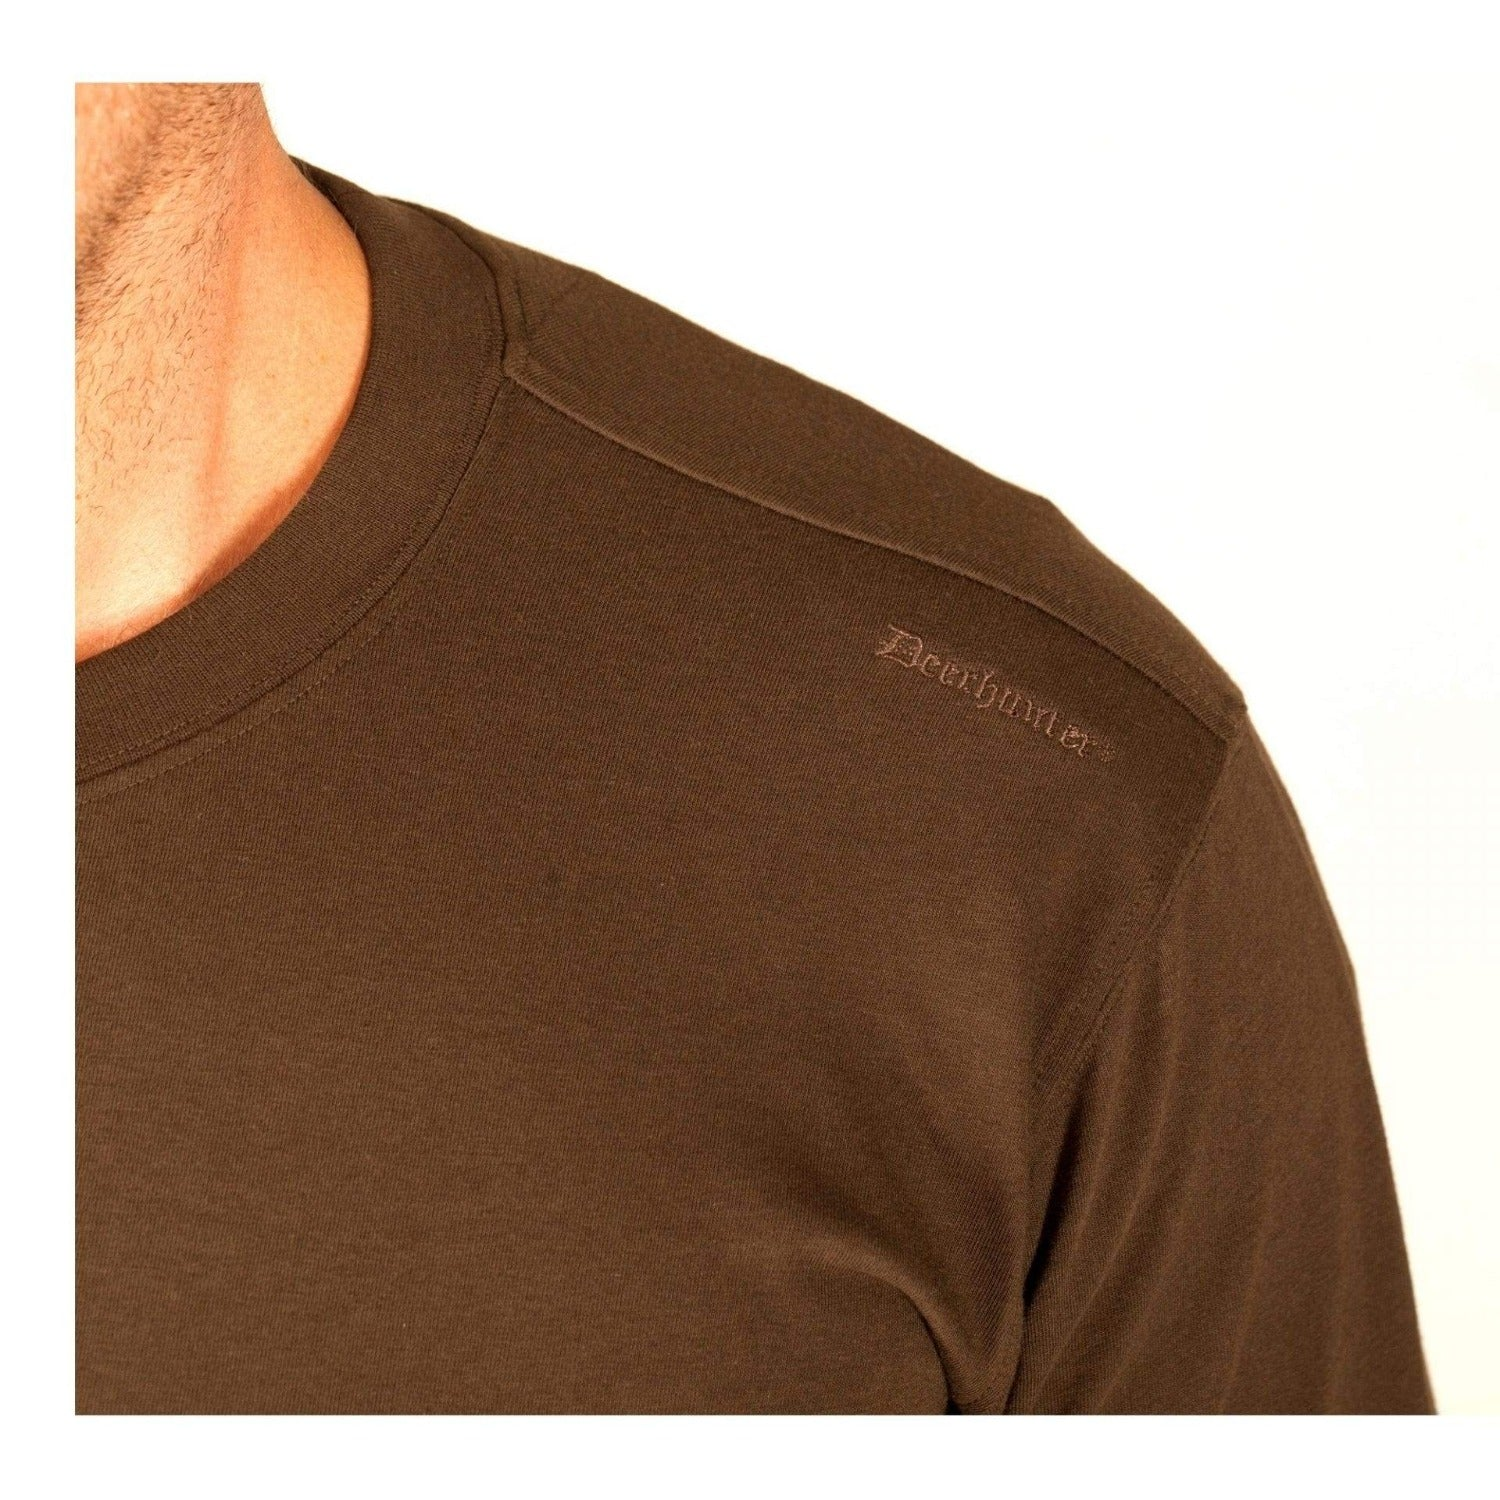 Deerhunter Swindon T-Shirt - Netnaturshop